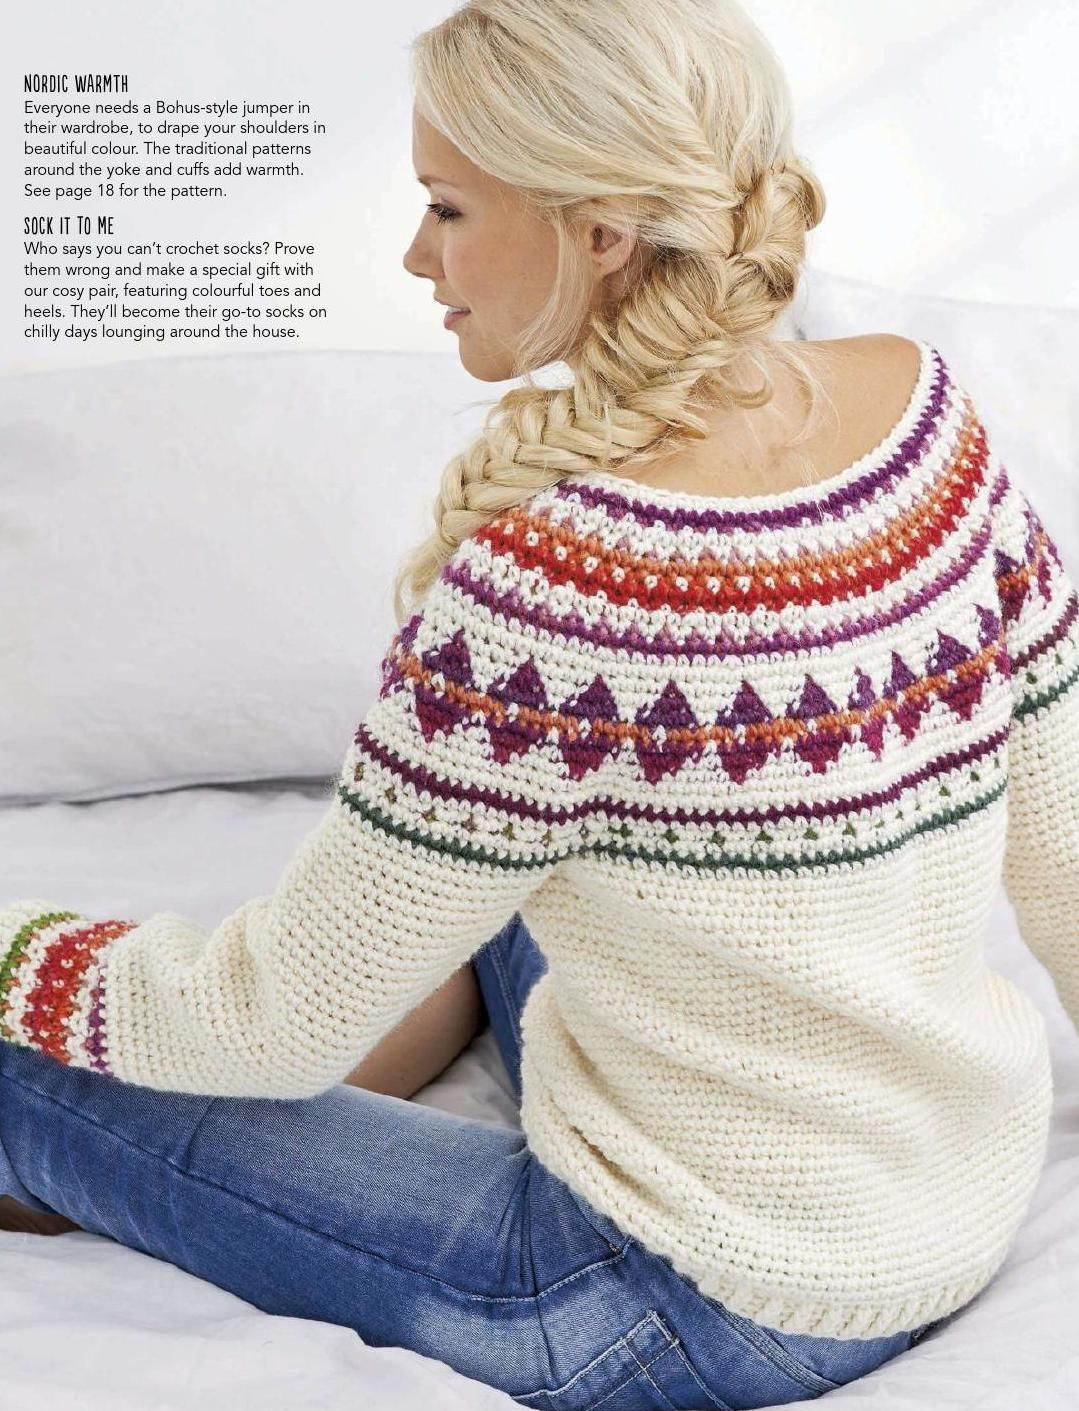 #ClippedOnIssuu from Your crochet christmas